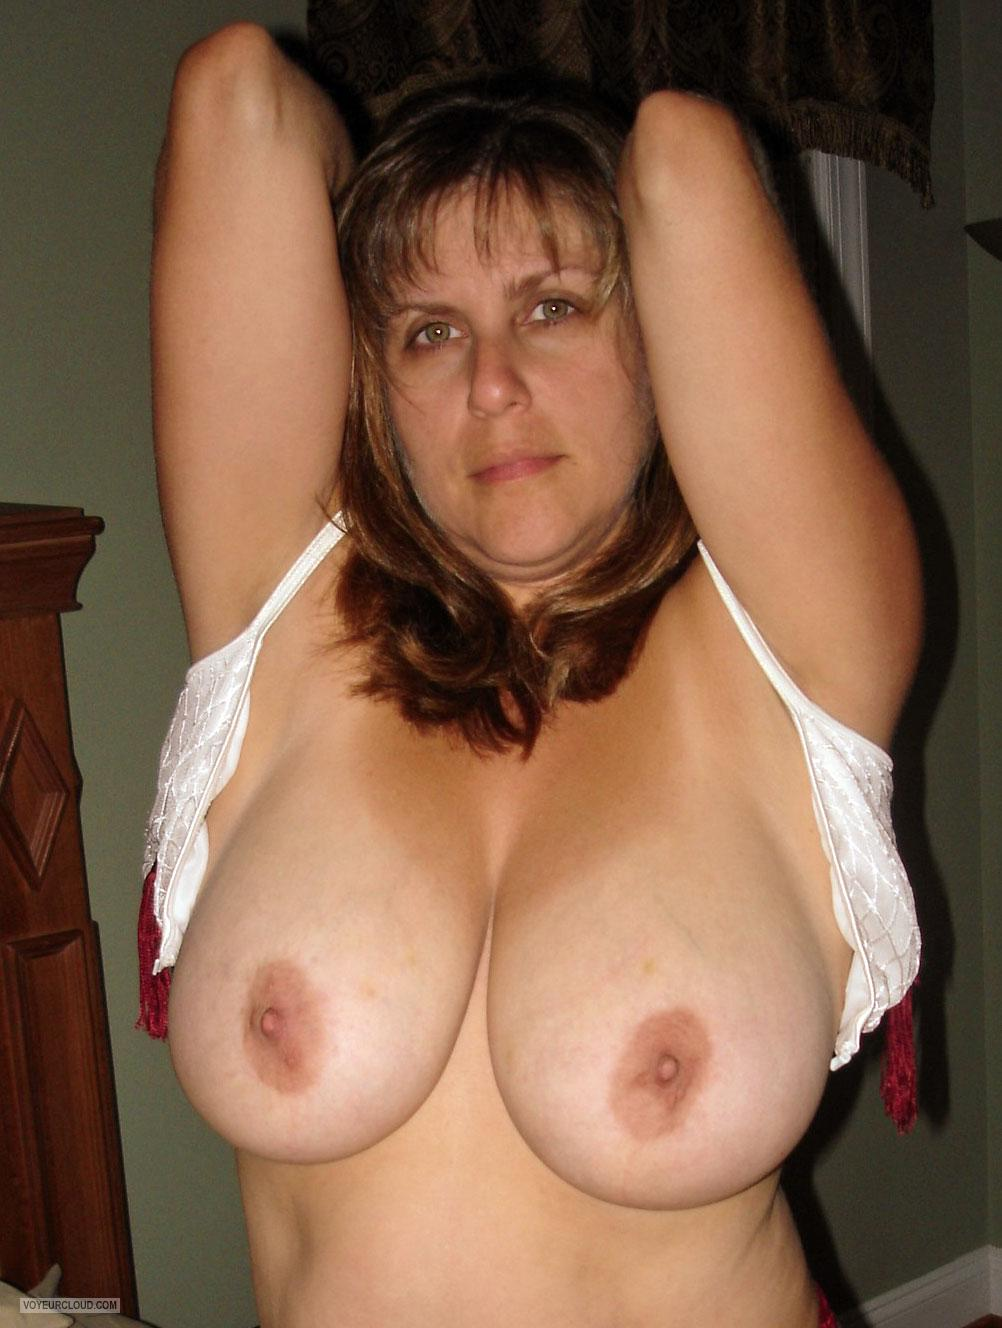 Ex girlfriend huge tits